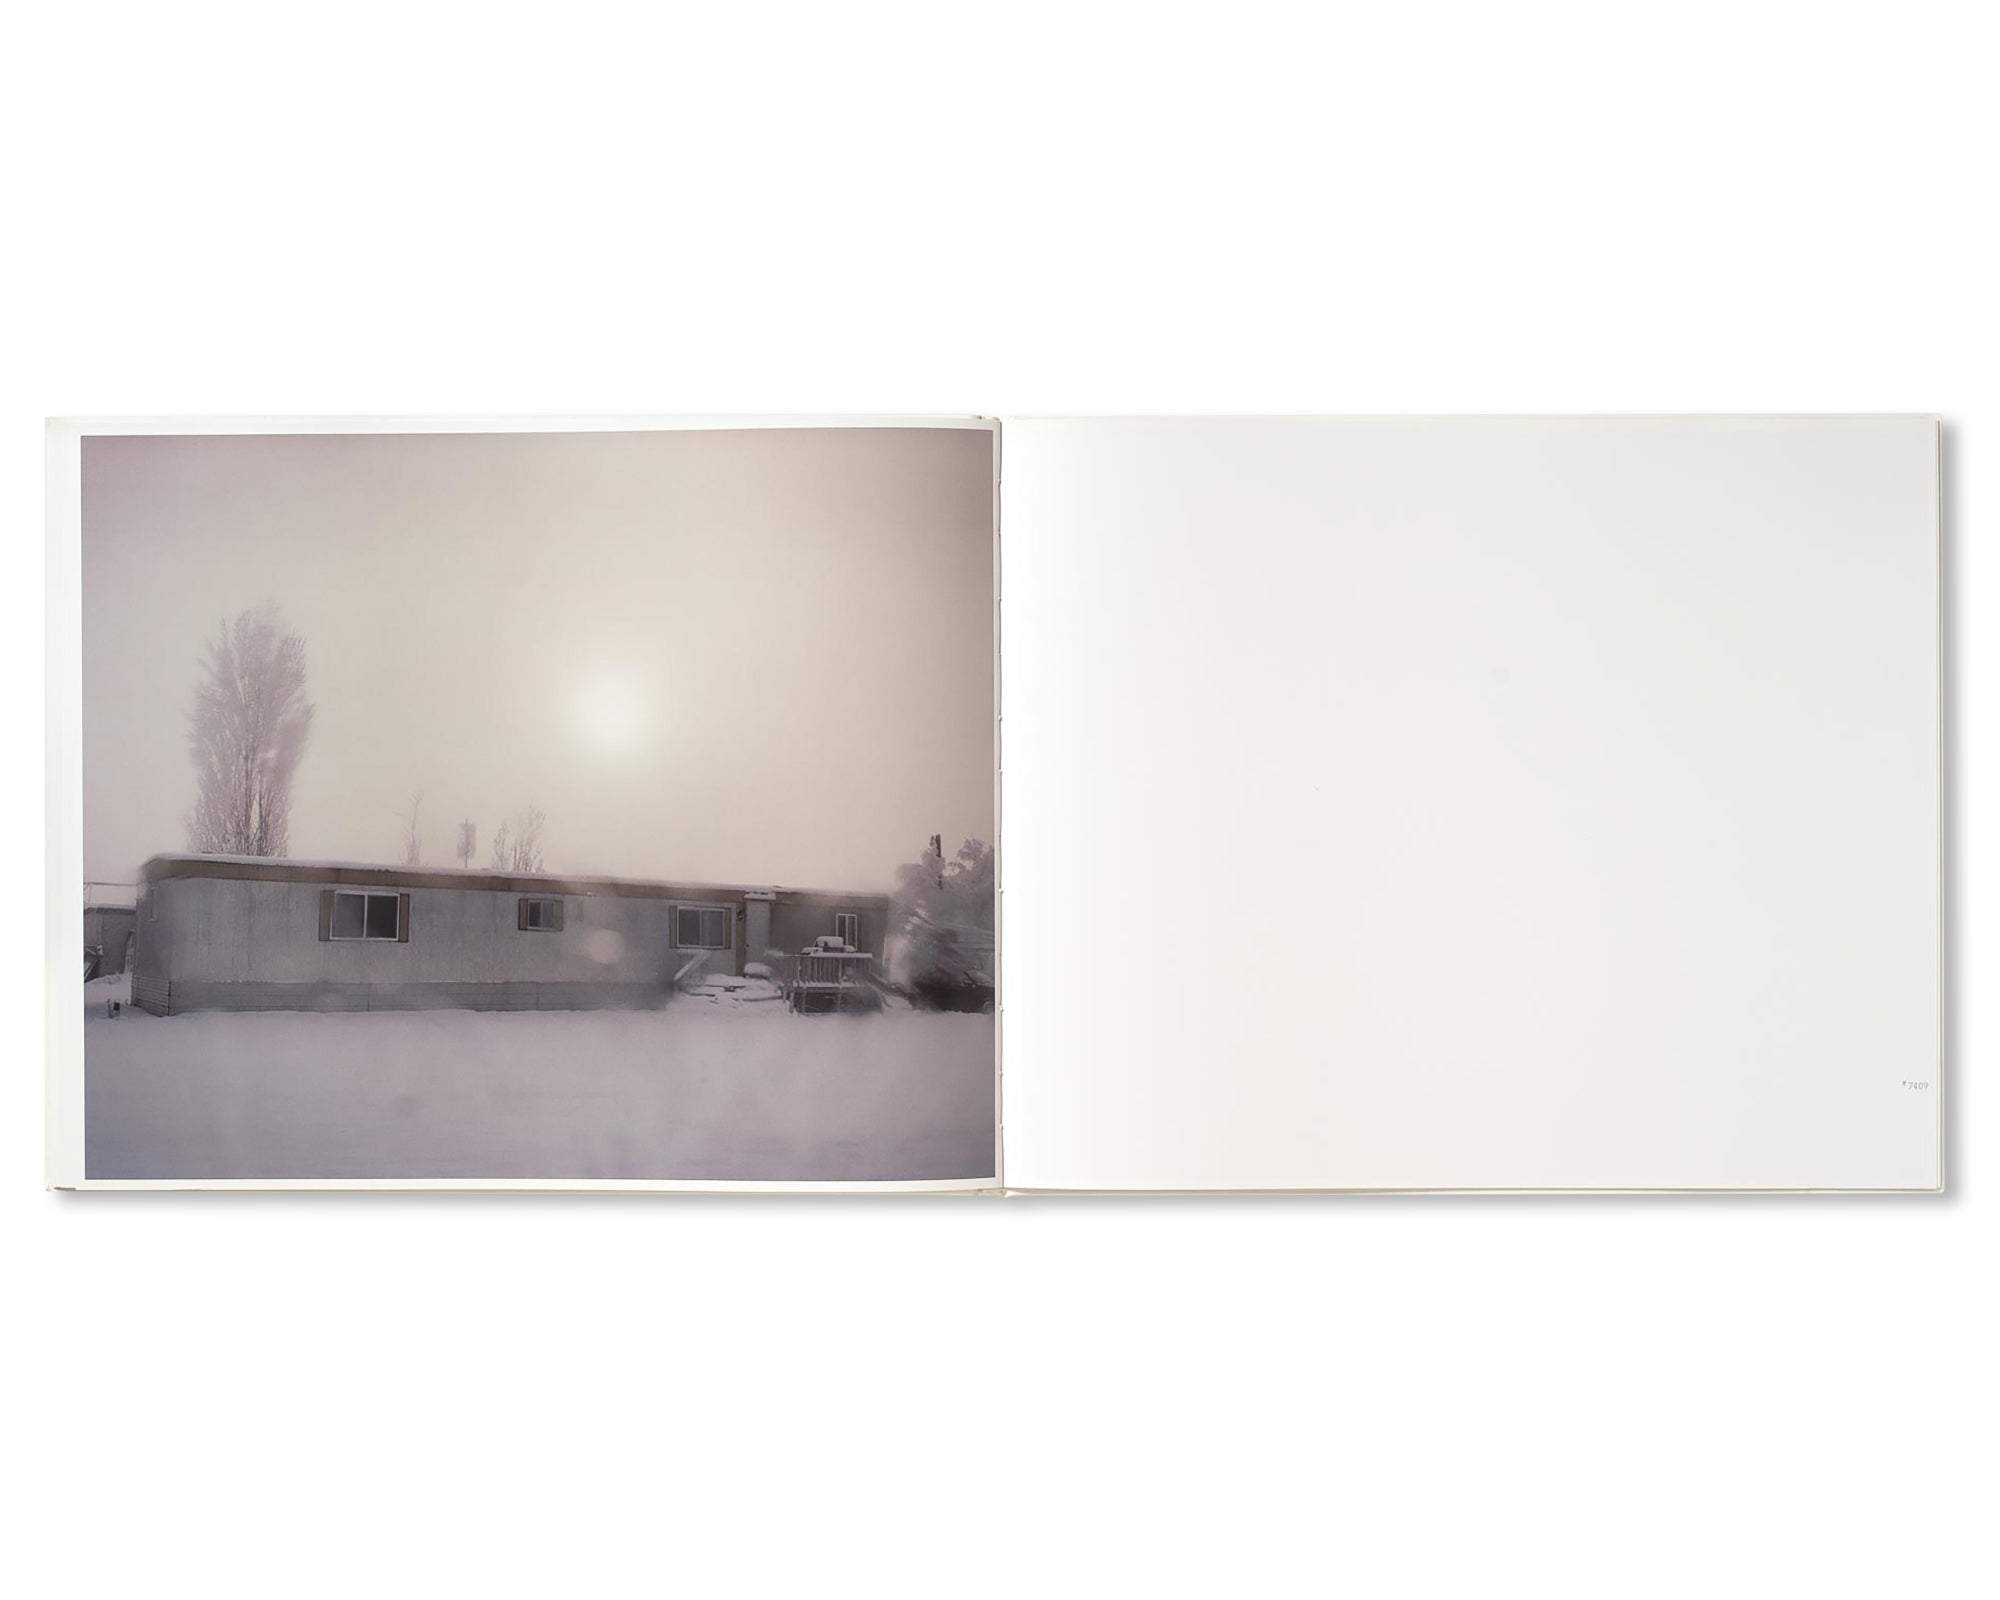 A ROAD DIVIDED by Todd Hido [SIGNED]